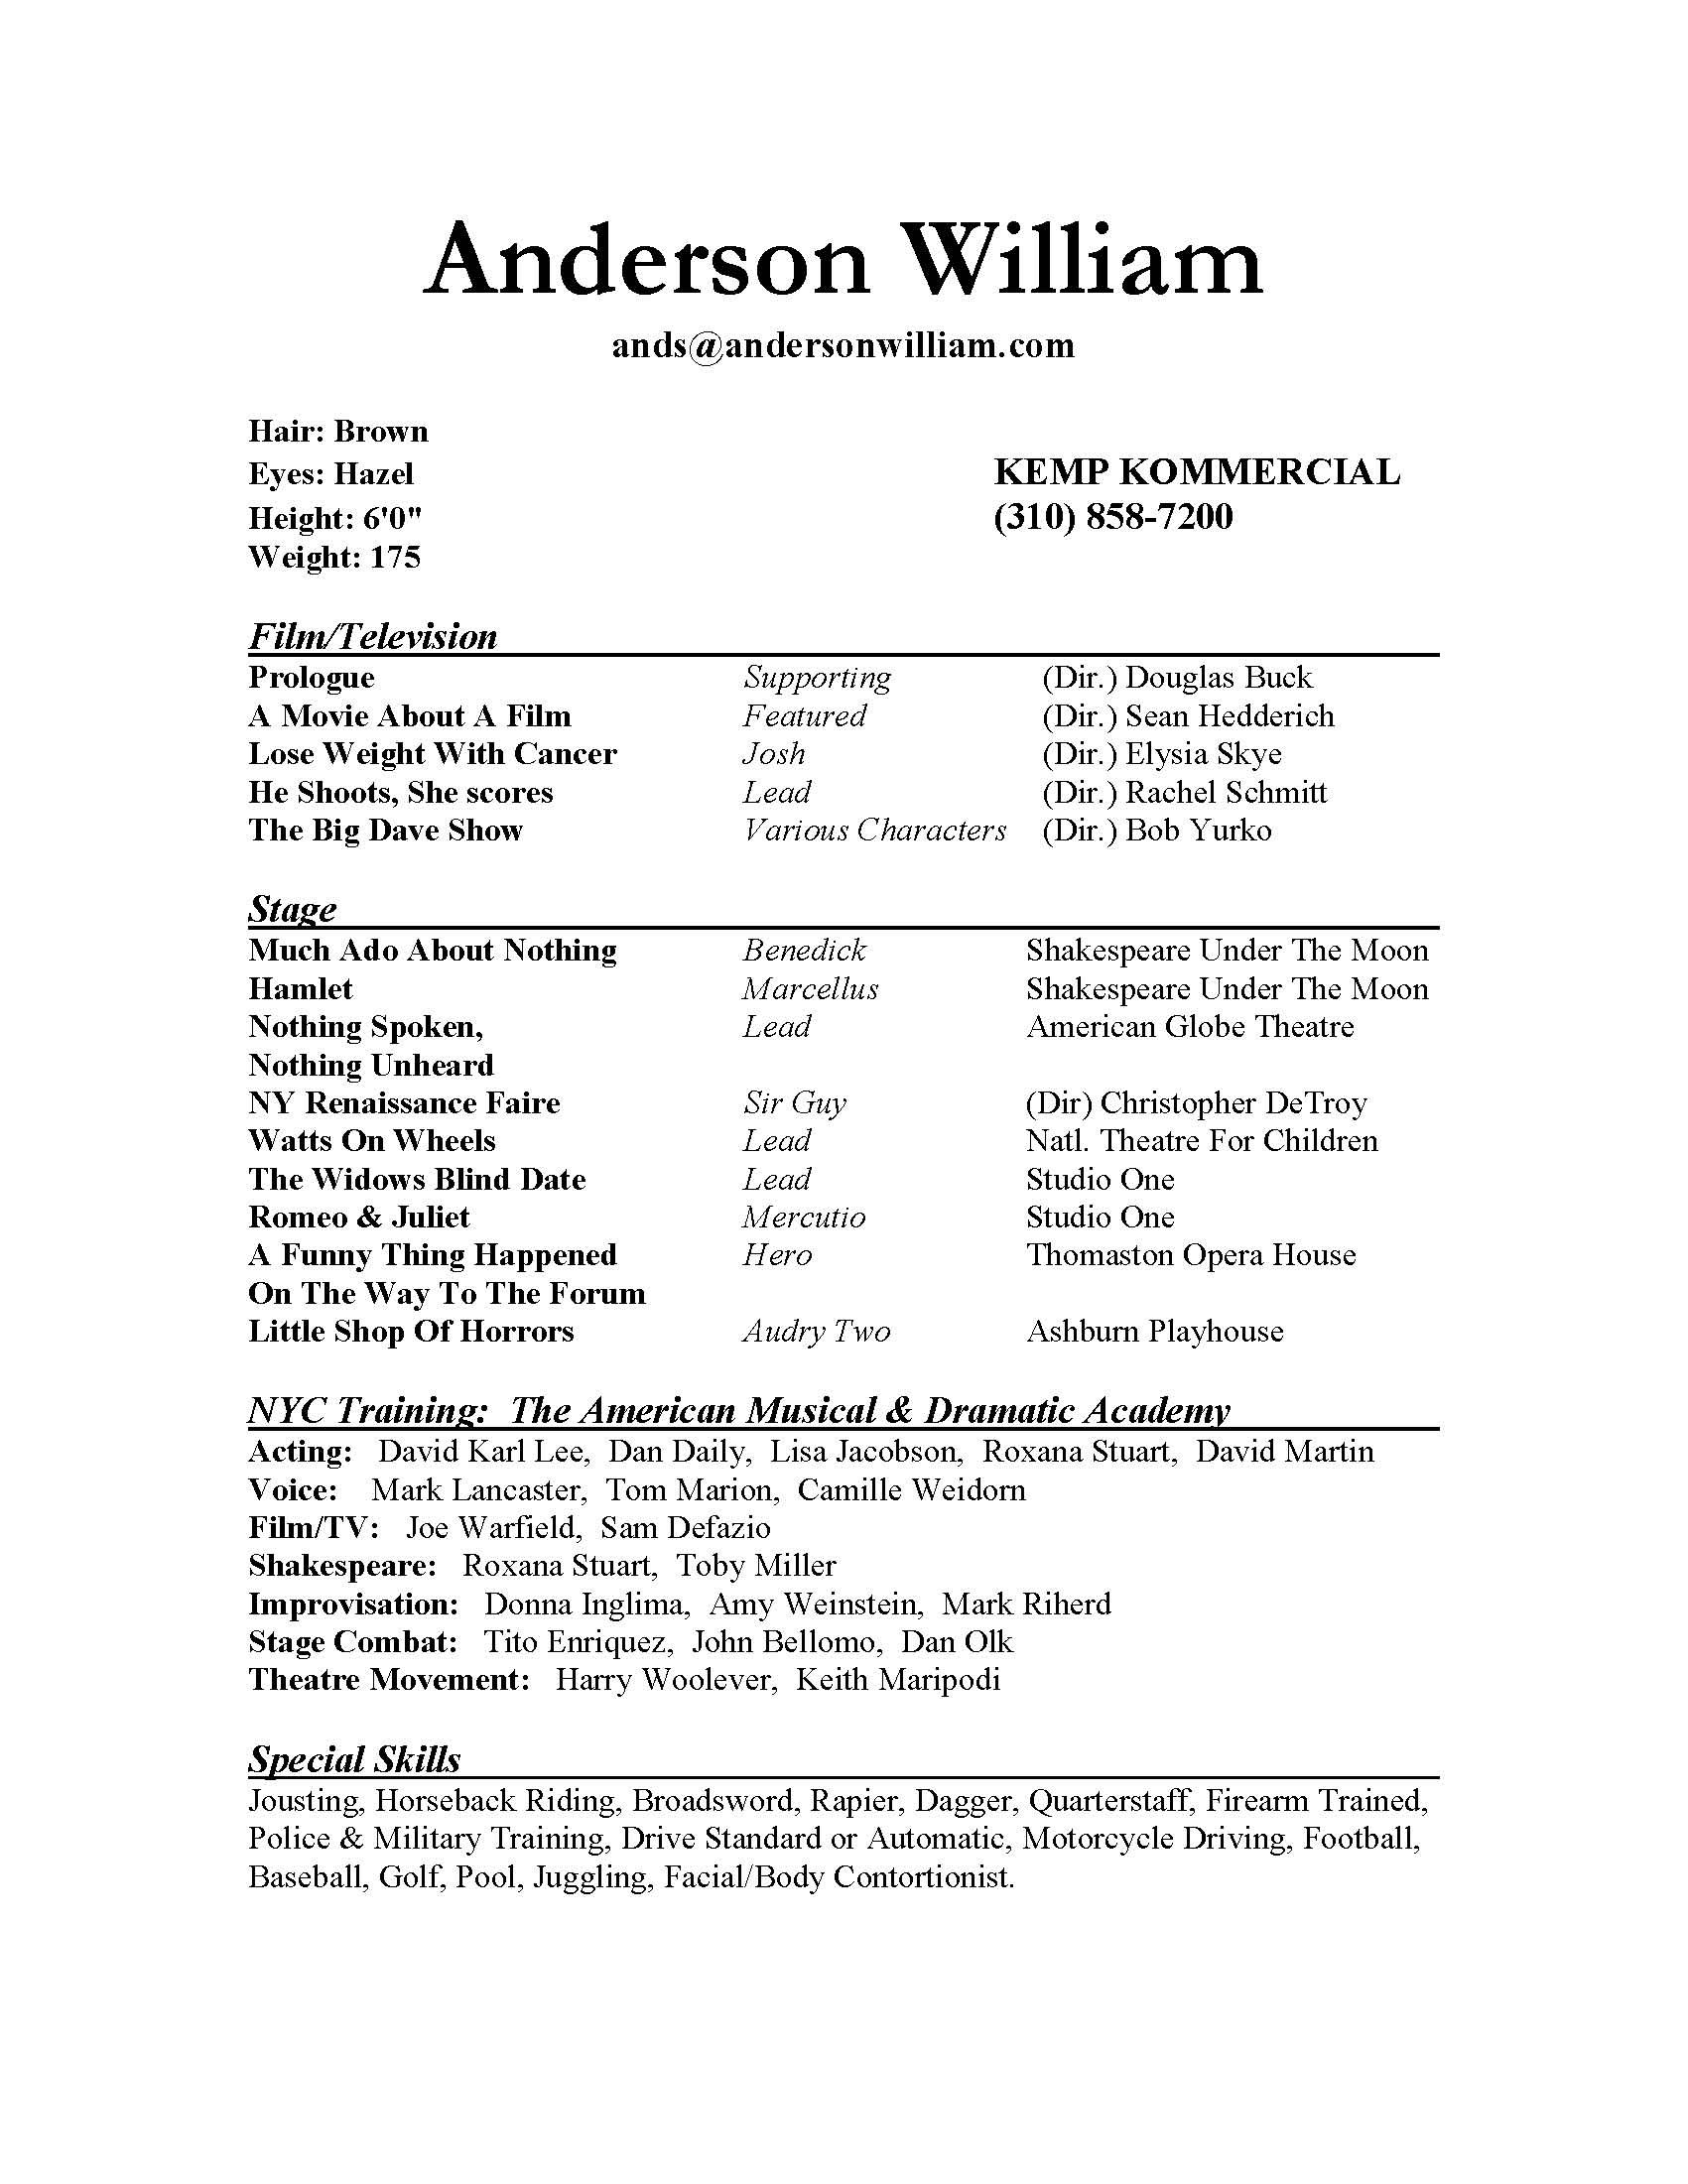 Pin By Resumejob On Resume Job Acting Resume Acting